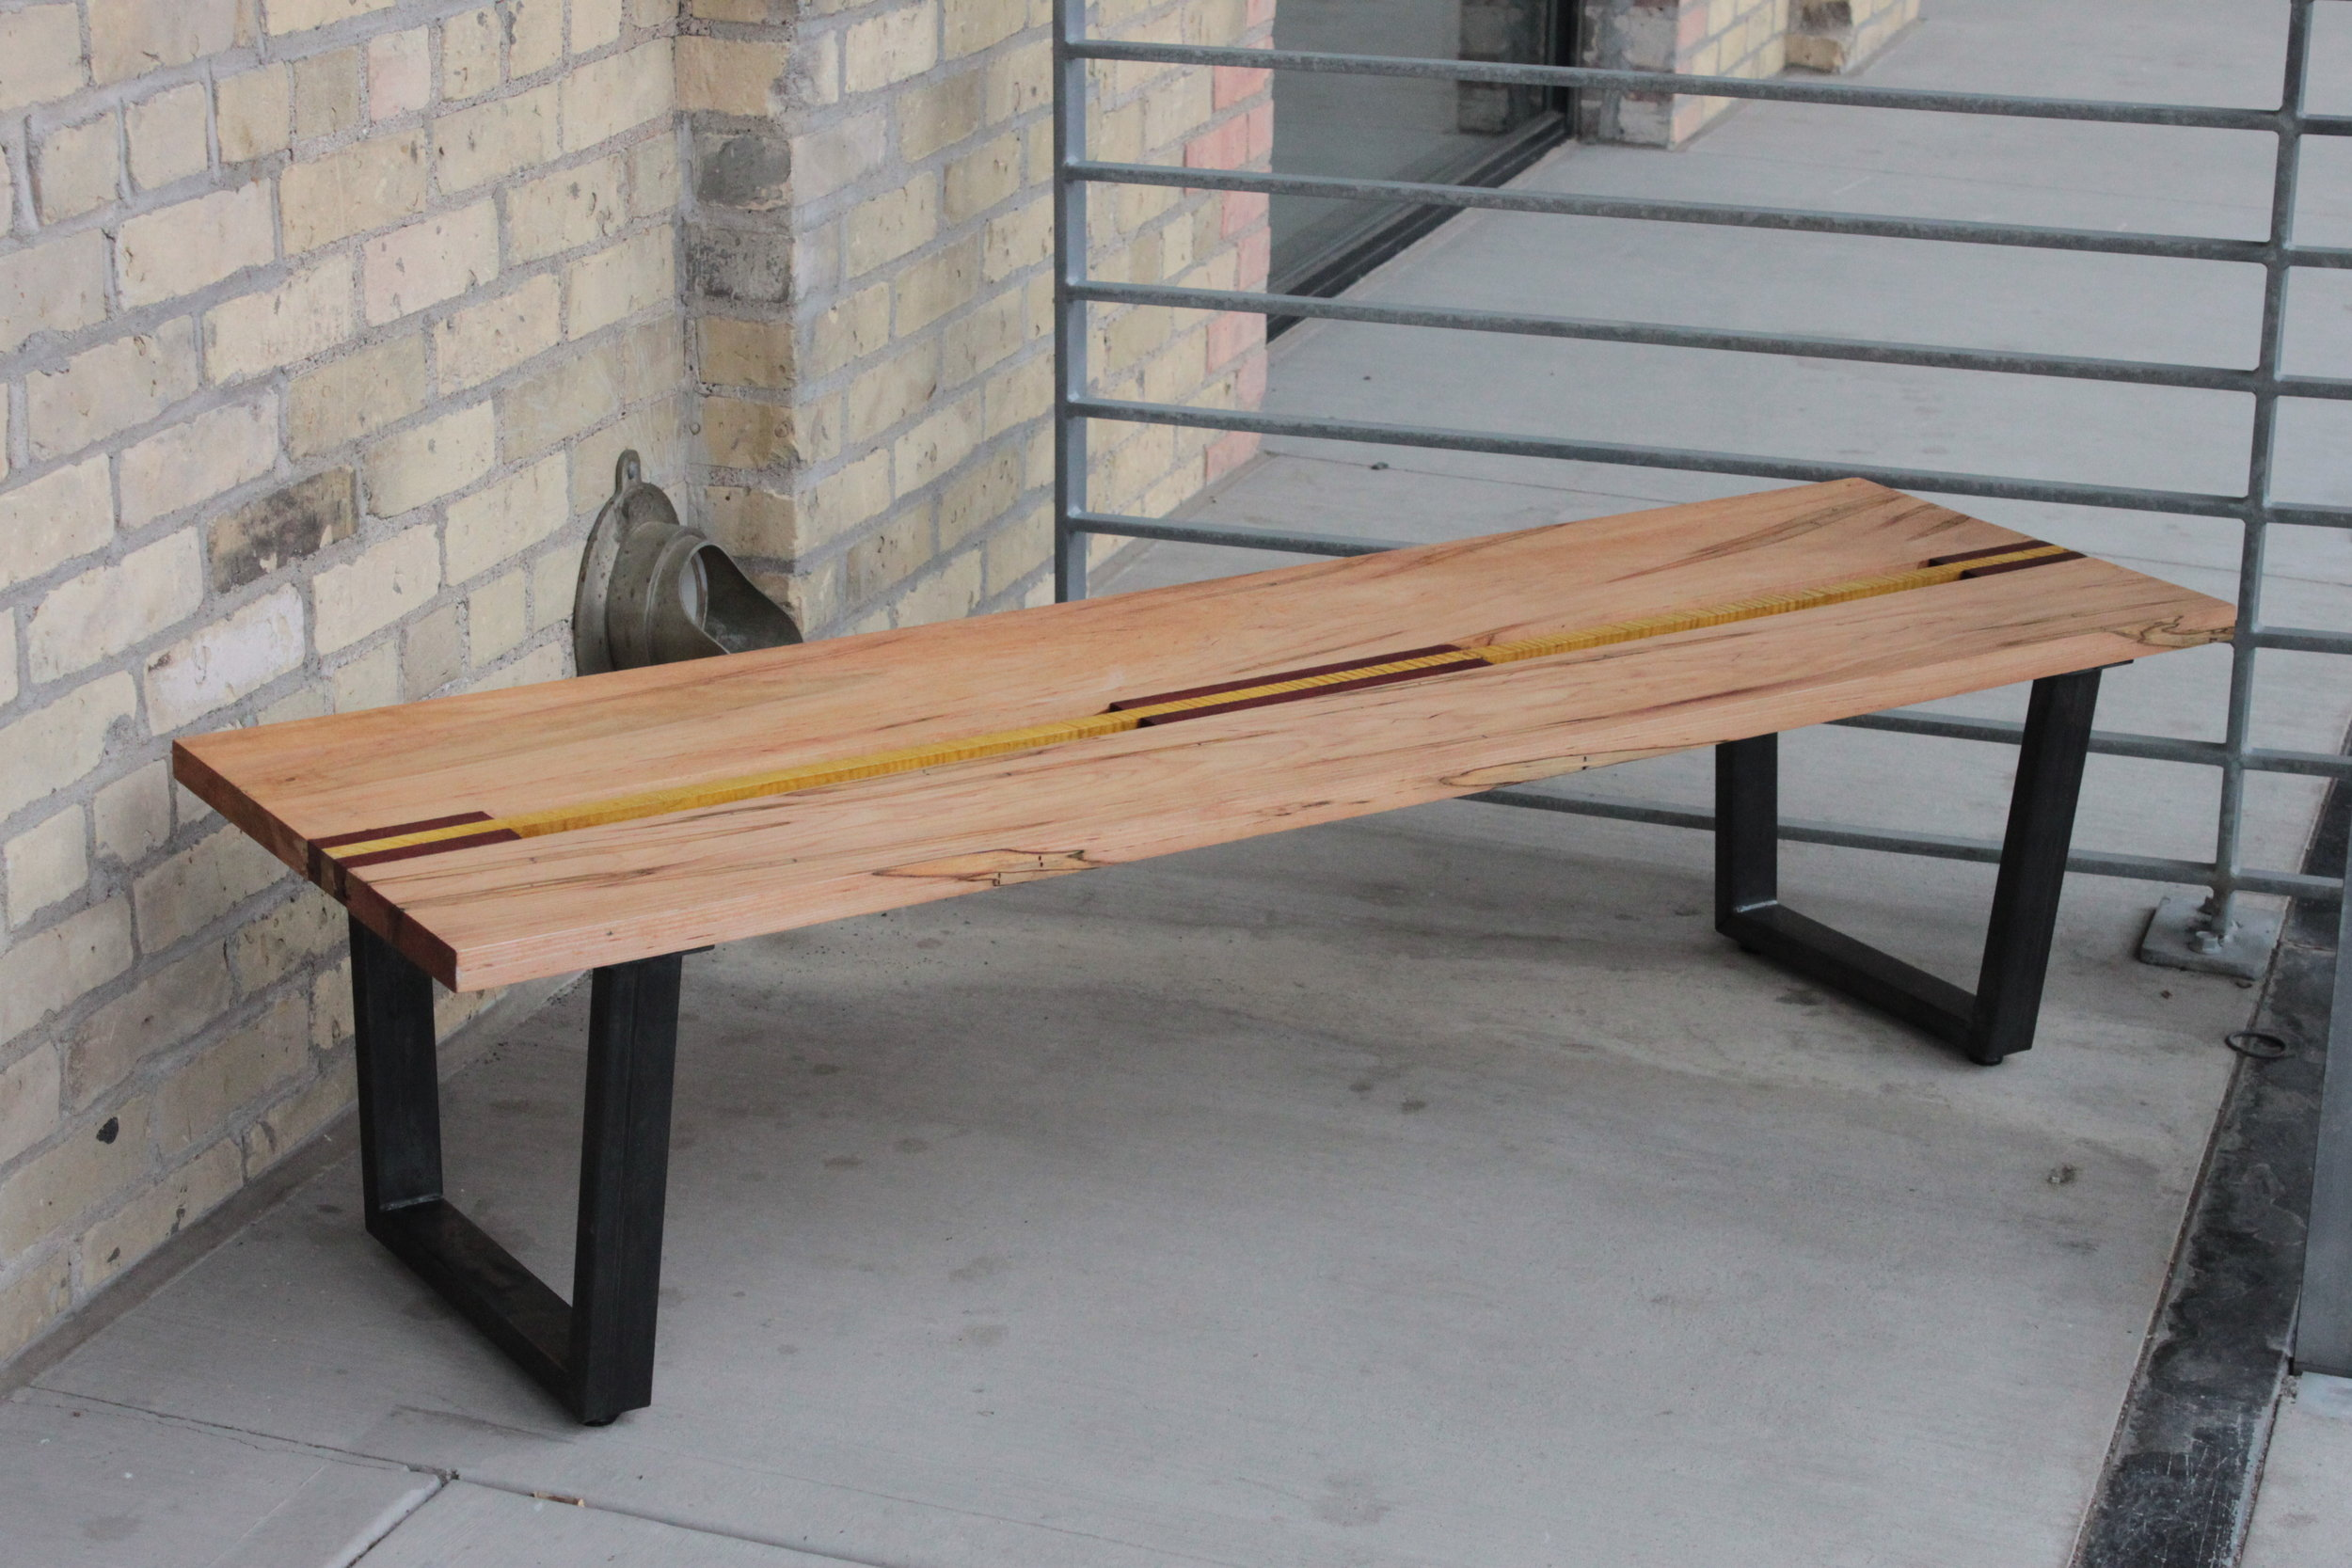 Maple, jatoba, figured maple and powder-coated steel